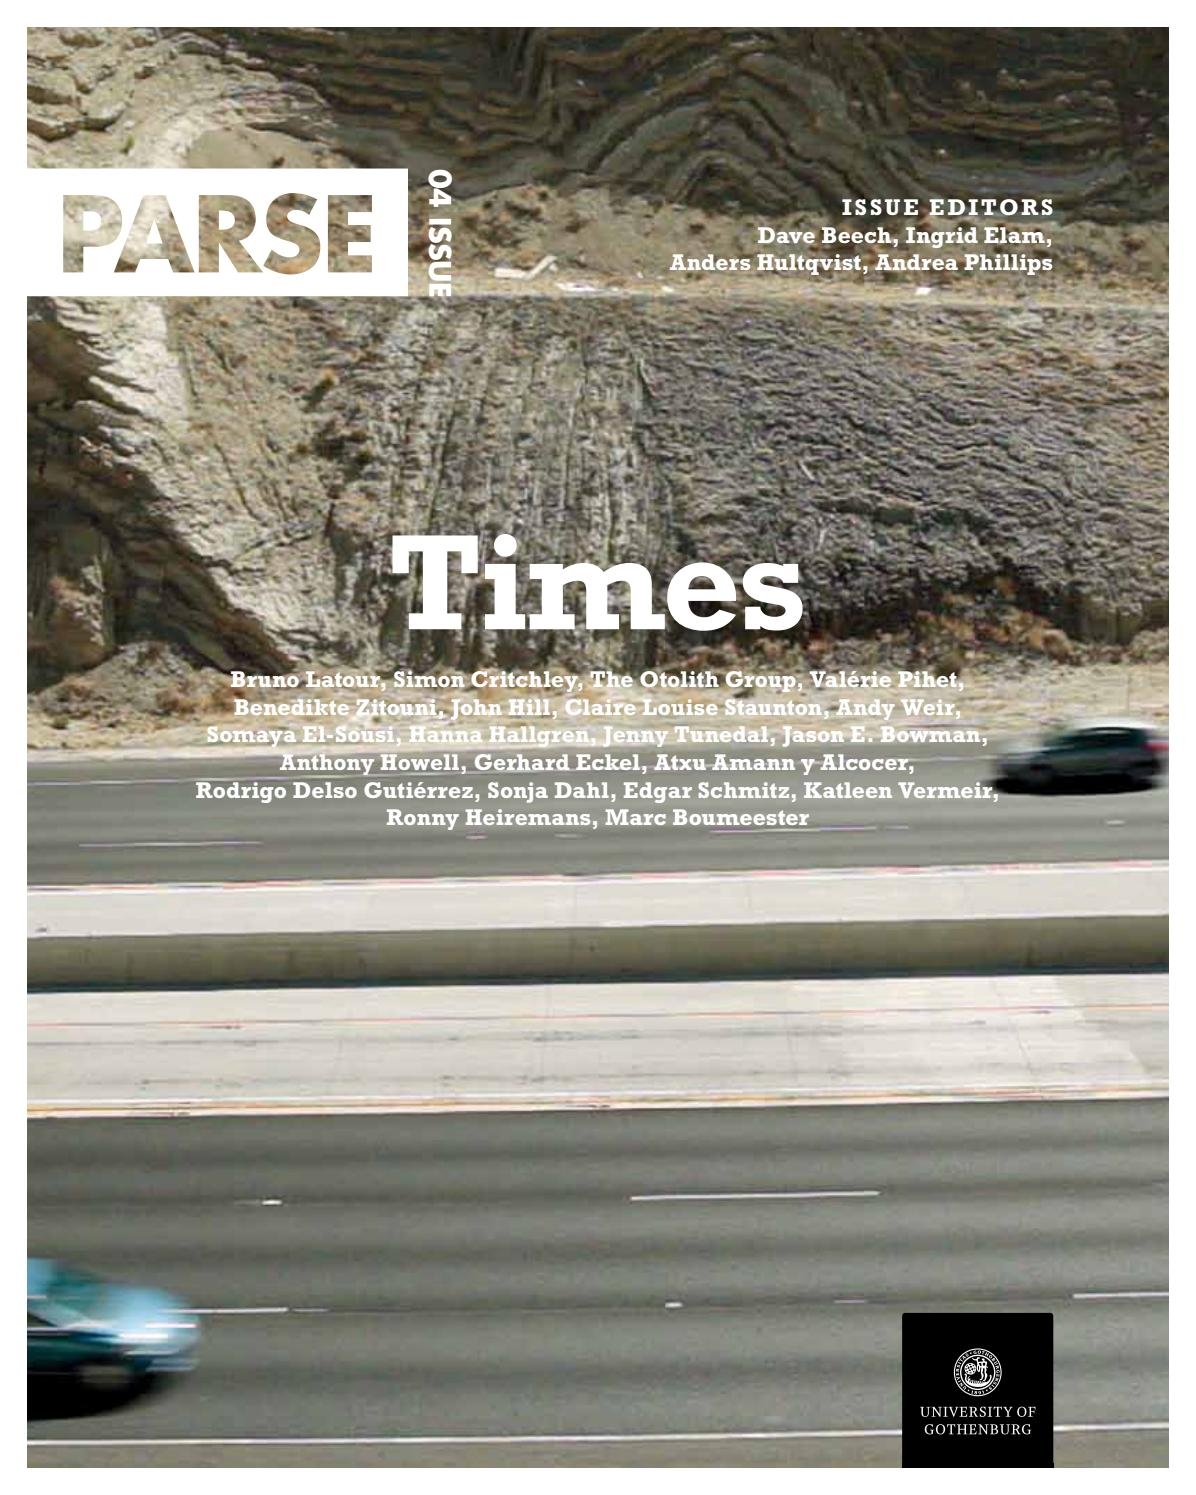 7 Issues; Vol.1 #4 to Vol.2 #4 Pursue and Destroy Magazine Multi Listing